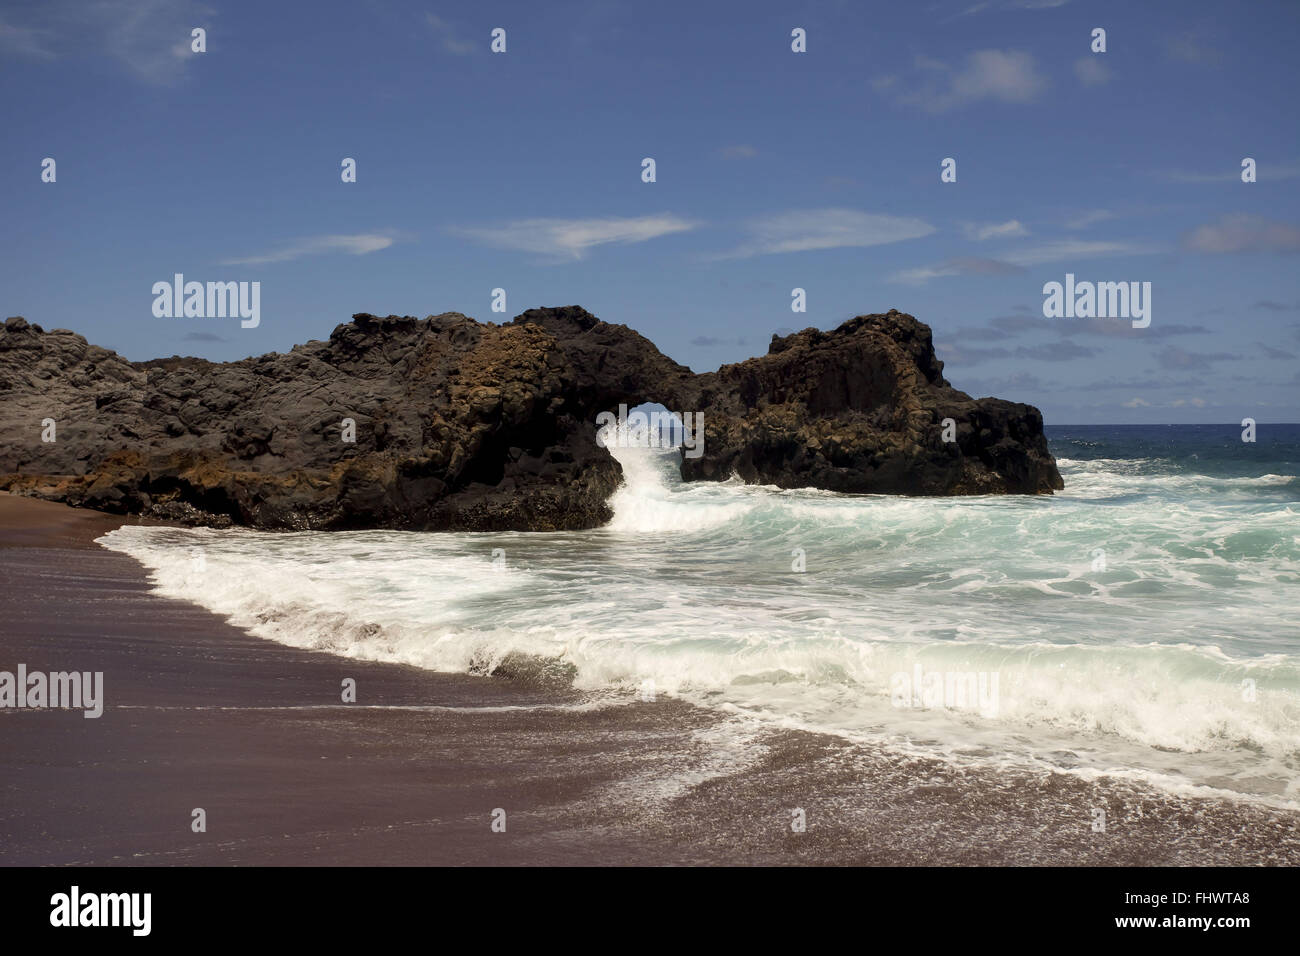 Volcanic rock pierced by the force of the water on the island of Trinidad in the Atlantic Ocean - Stock Image